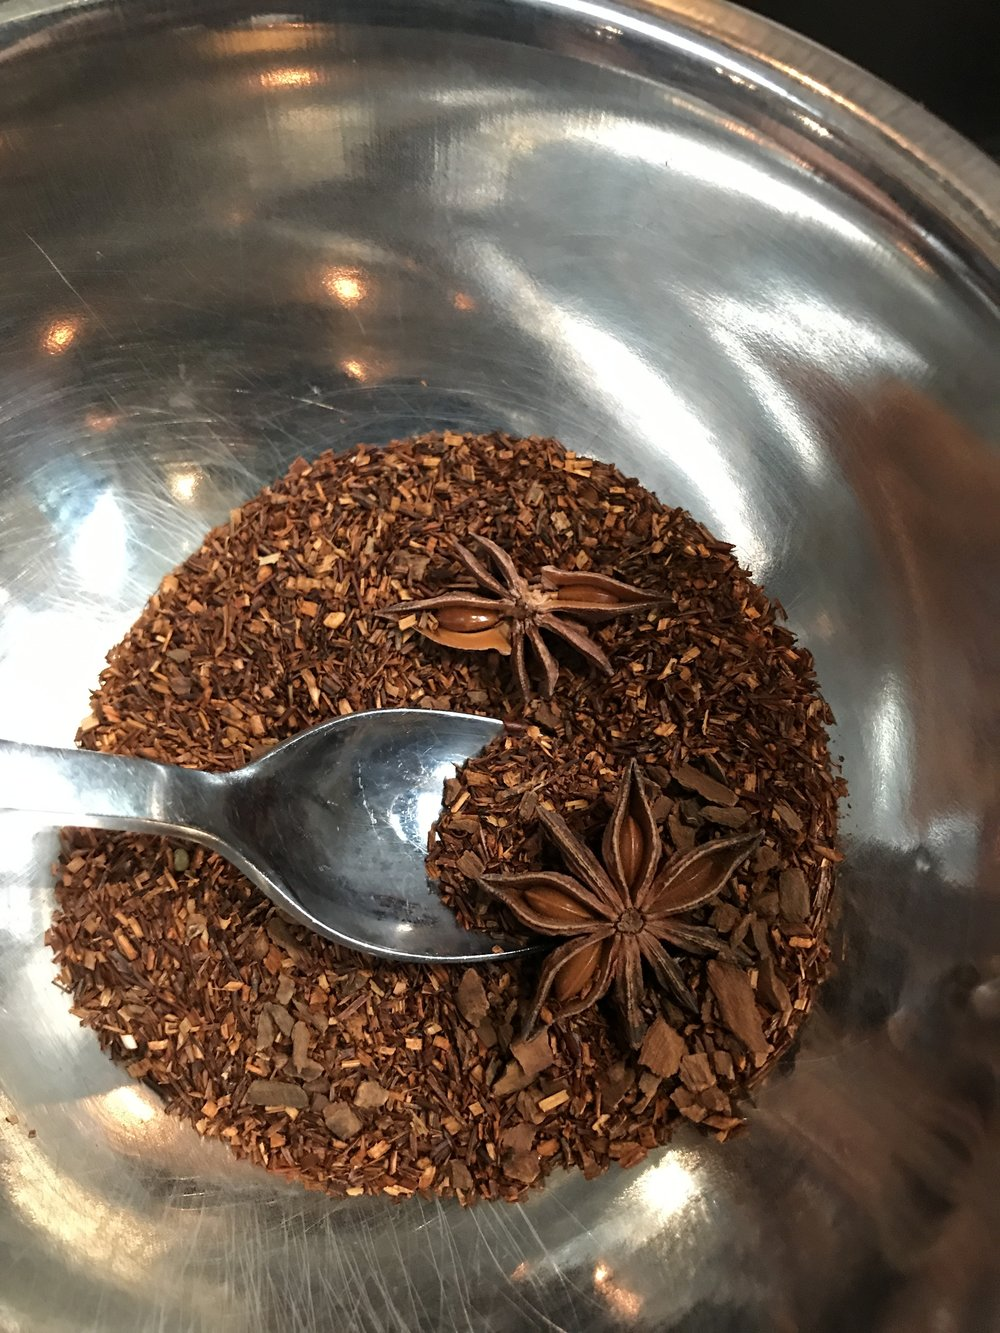 We made our own tea blends to try with TeBella Tea Company. This is cinnamon, anise, and cacao nibs.